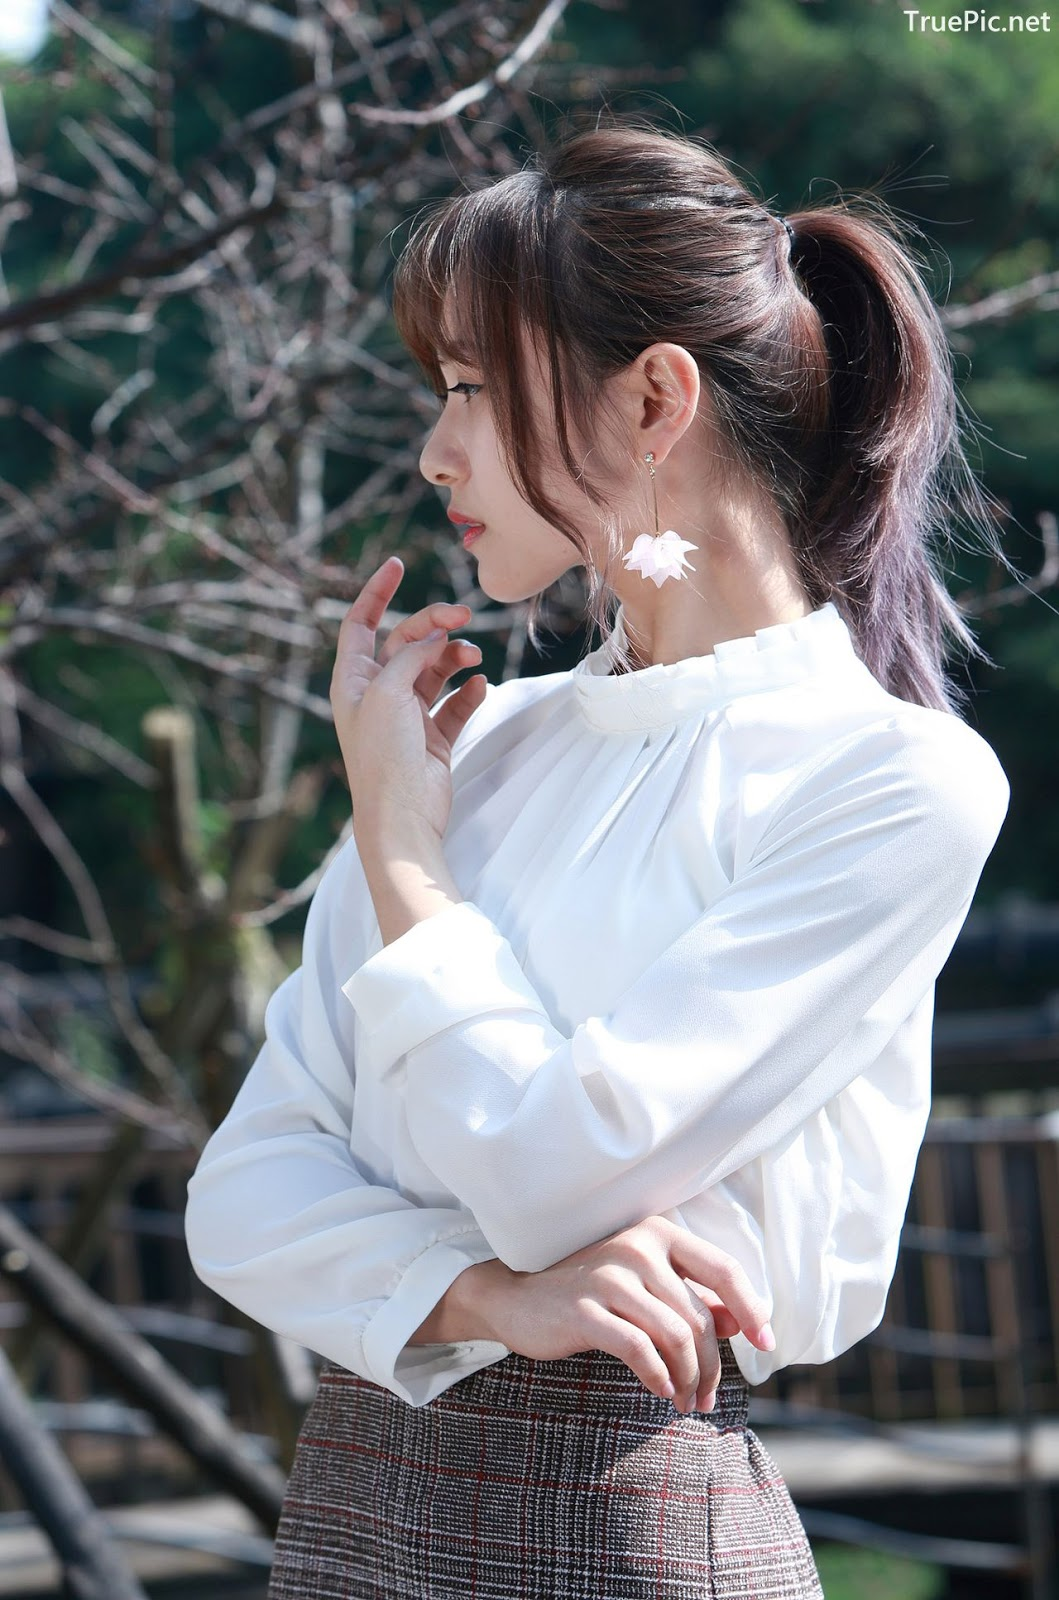 Image-Taiwanese-Model-郭思敏-Pure-And-Gorgeous-Girl-In-Office-Uniform-TruePic.net- Picture-5